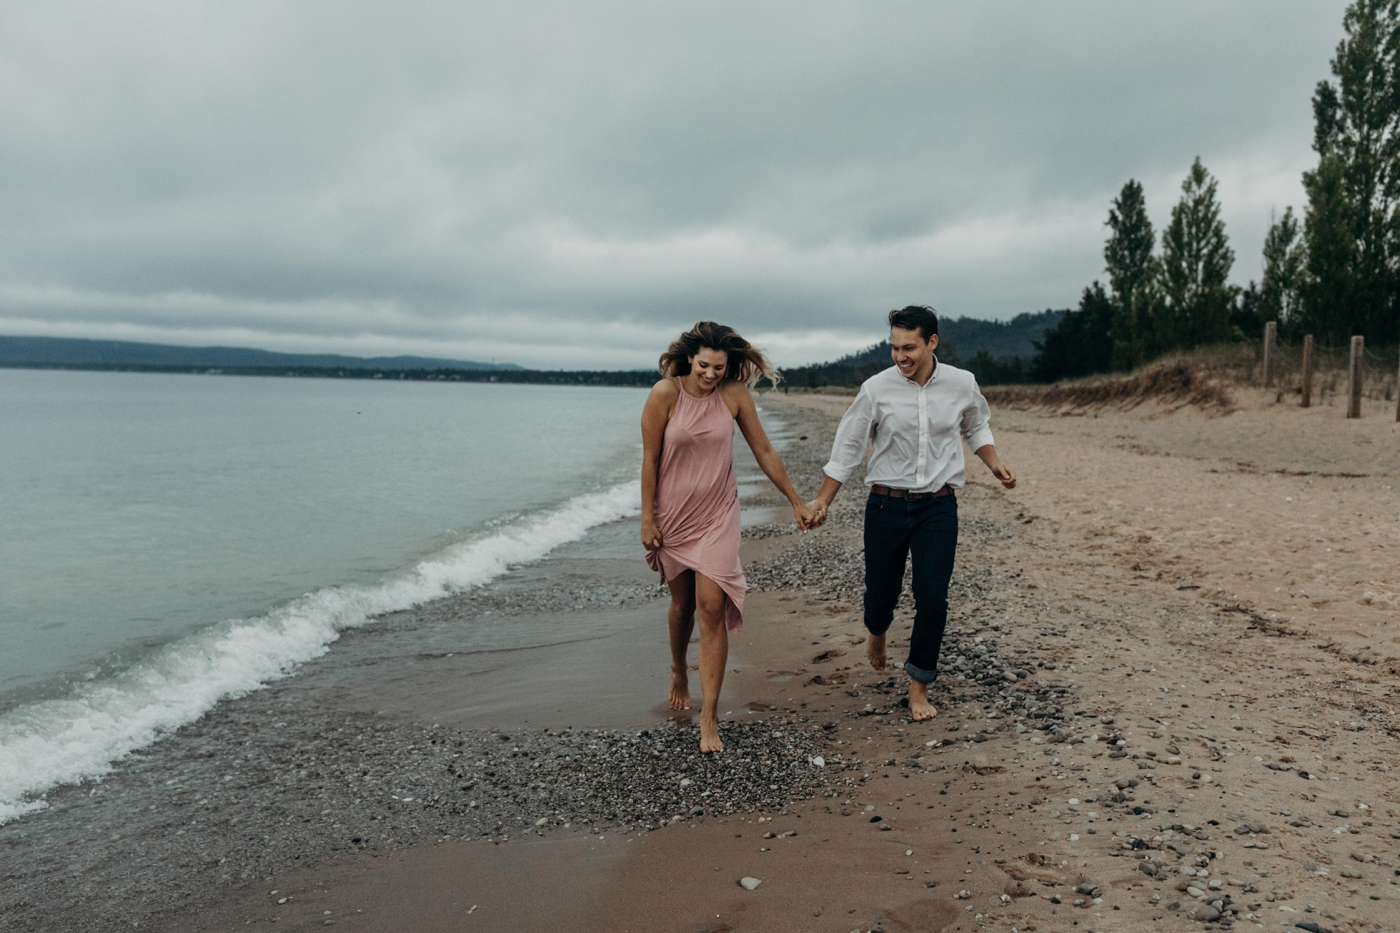 Sleeping_Bear_Dunes_Couples_Adventure_Session_Adventure_Wedding_Photographer_Hiking_with_Heels_Brett+Emily-77.jpg